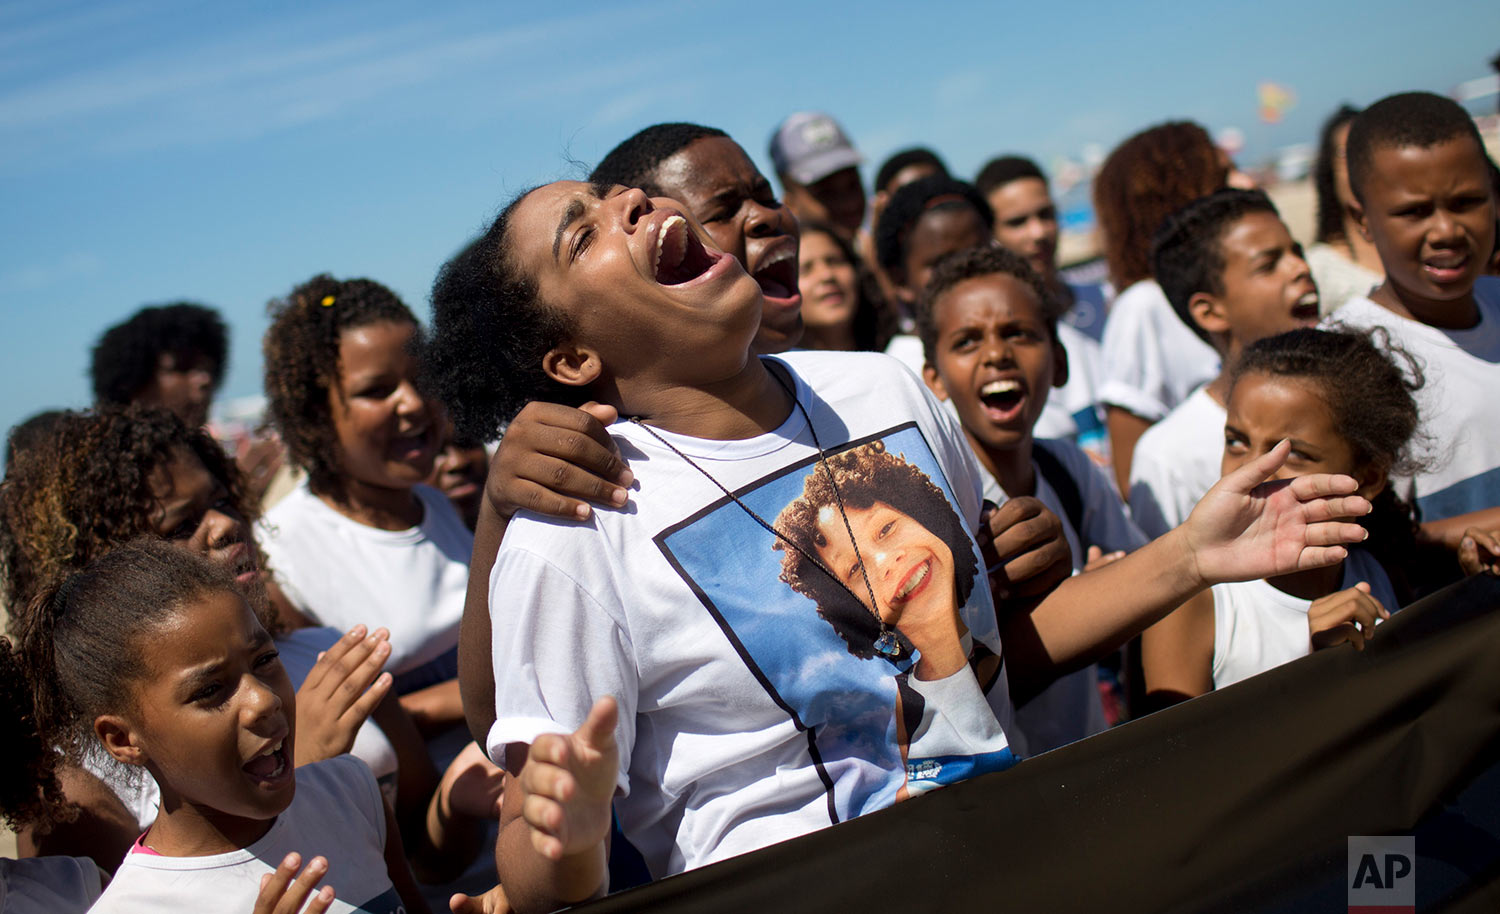 Bianca Alves da Costa, 21, center, sister of Maria Eduarda, who was shot to death inside her school, cries during a protest marking one year since her death, on Copacabana beach, in Rio de Janeiro, Brazil, March 30, 2018. Protesters marked the one-year anniversary of the death of the 13-year-old who was hit by stray bullets from a military police officer's rifle while drinking water from a fountain on her school's patio during gym class. (AP Photo/Silvia Izquierdo)